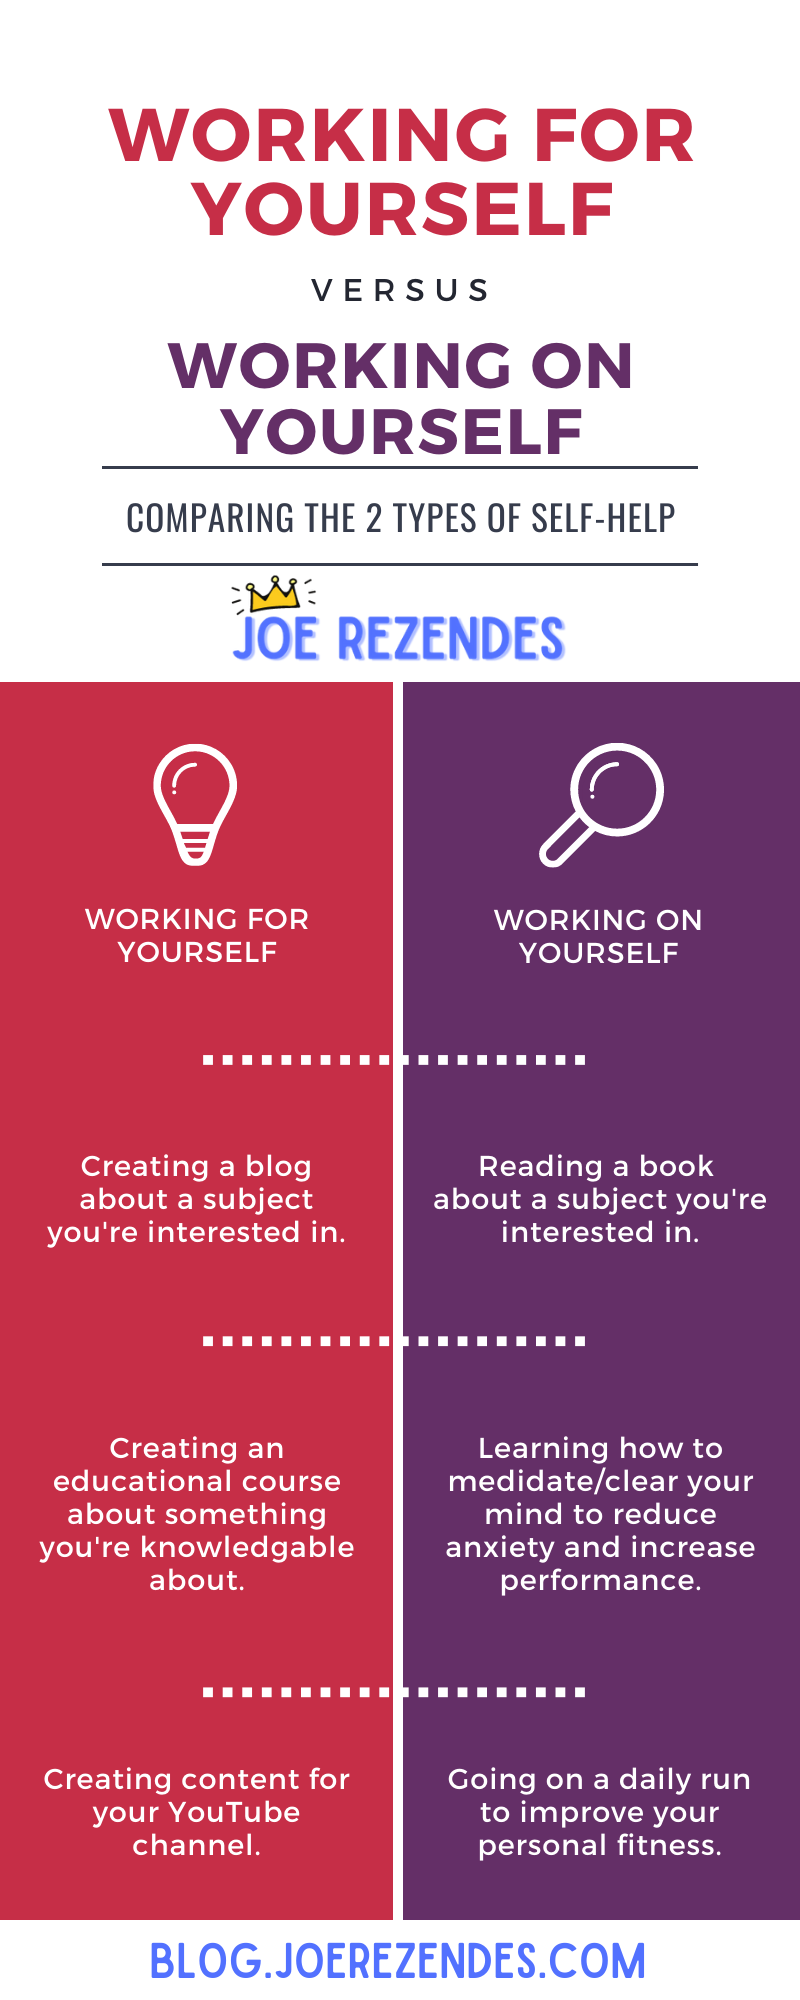 The difference between working for yourself and working on yourself